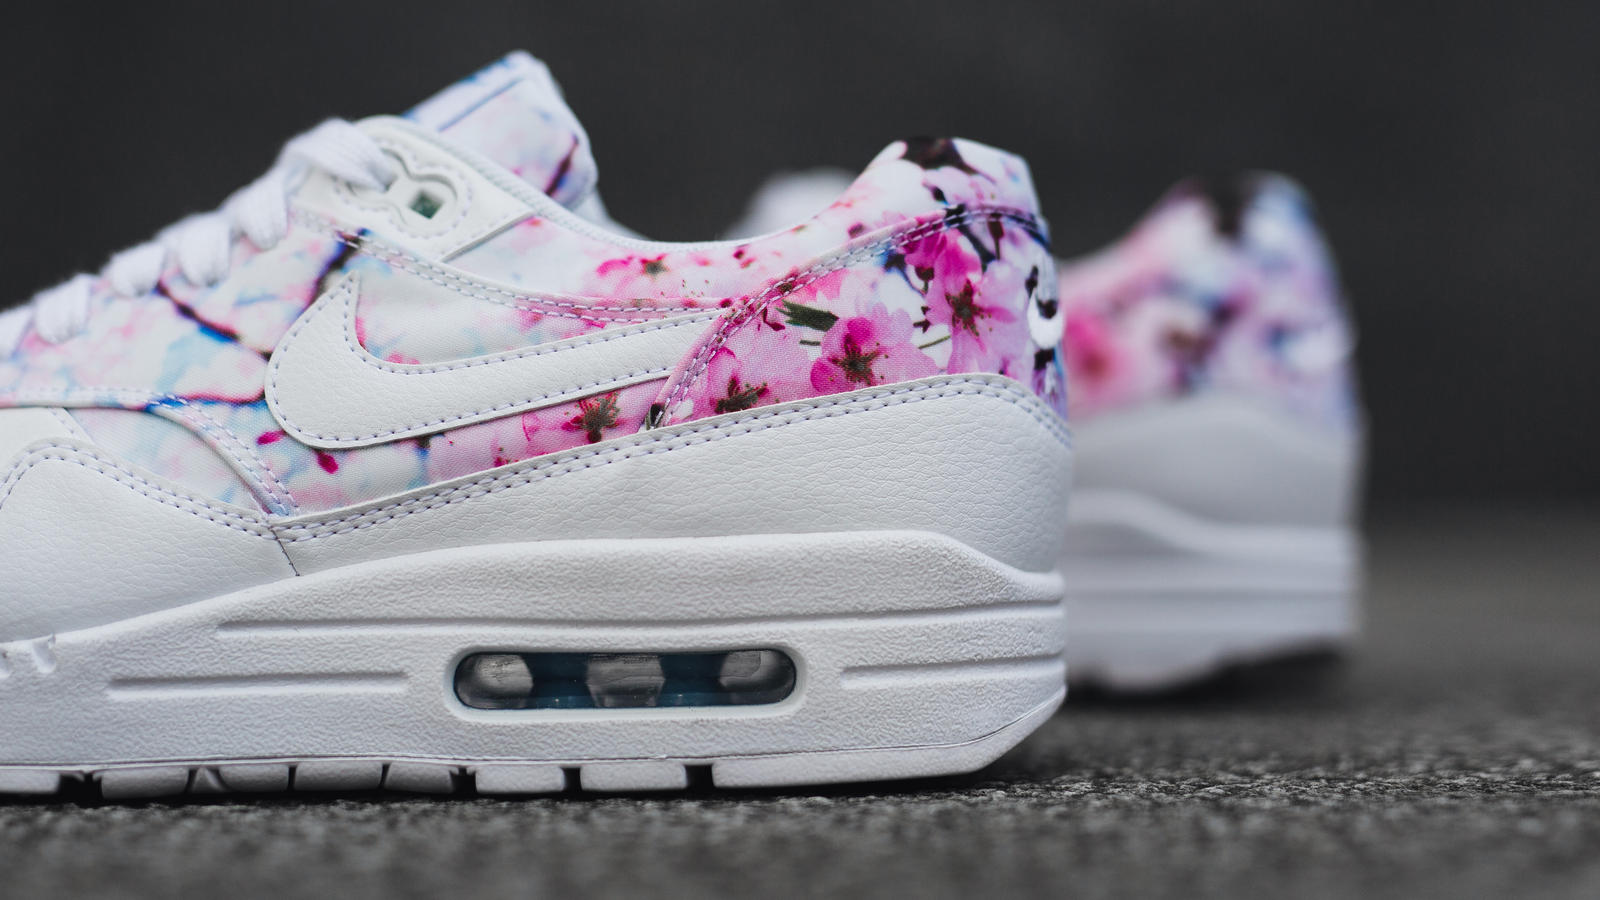 Nike Air Max 1 Cherry Blossom Release Date leoncamier.co.uk